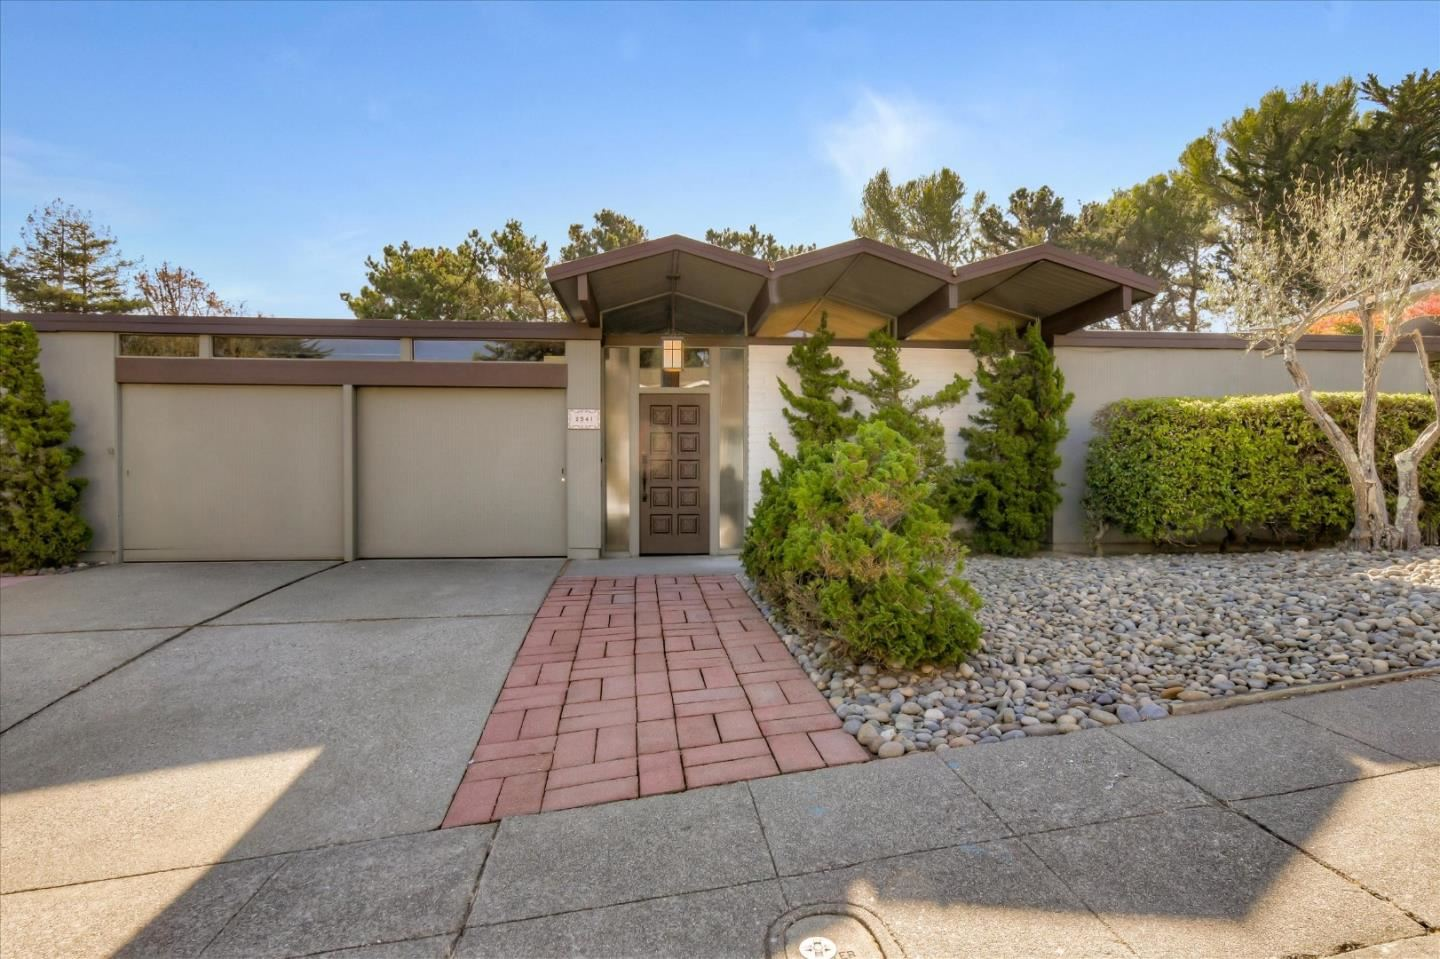 Photo for 2941 Dolores WAY, BURLINGAME, CA 94010 (MLS # ML81830216)